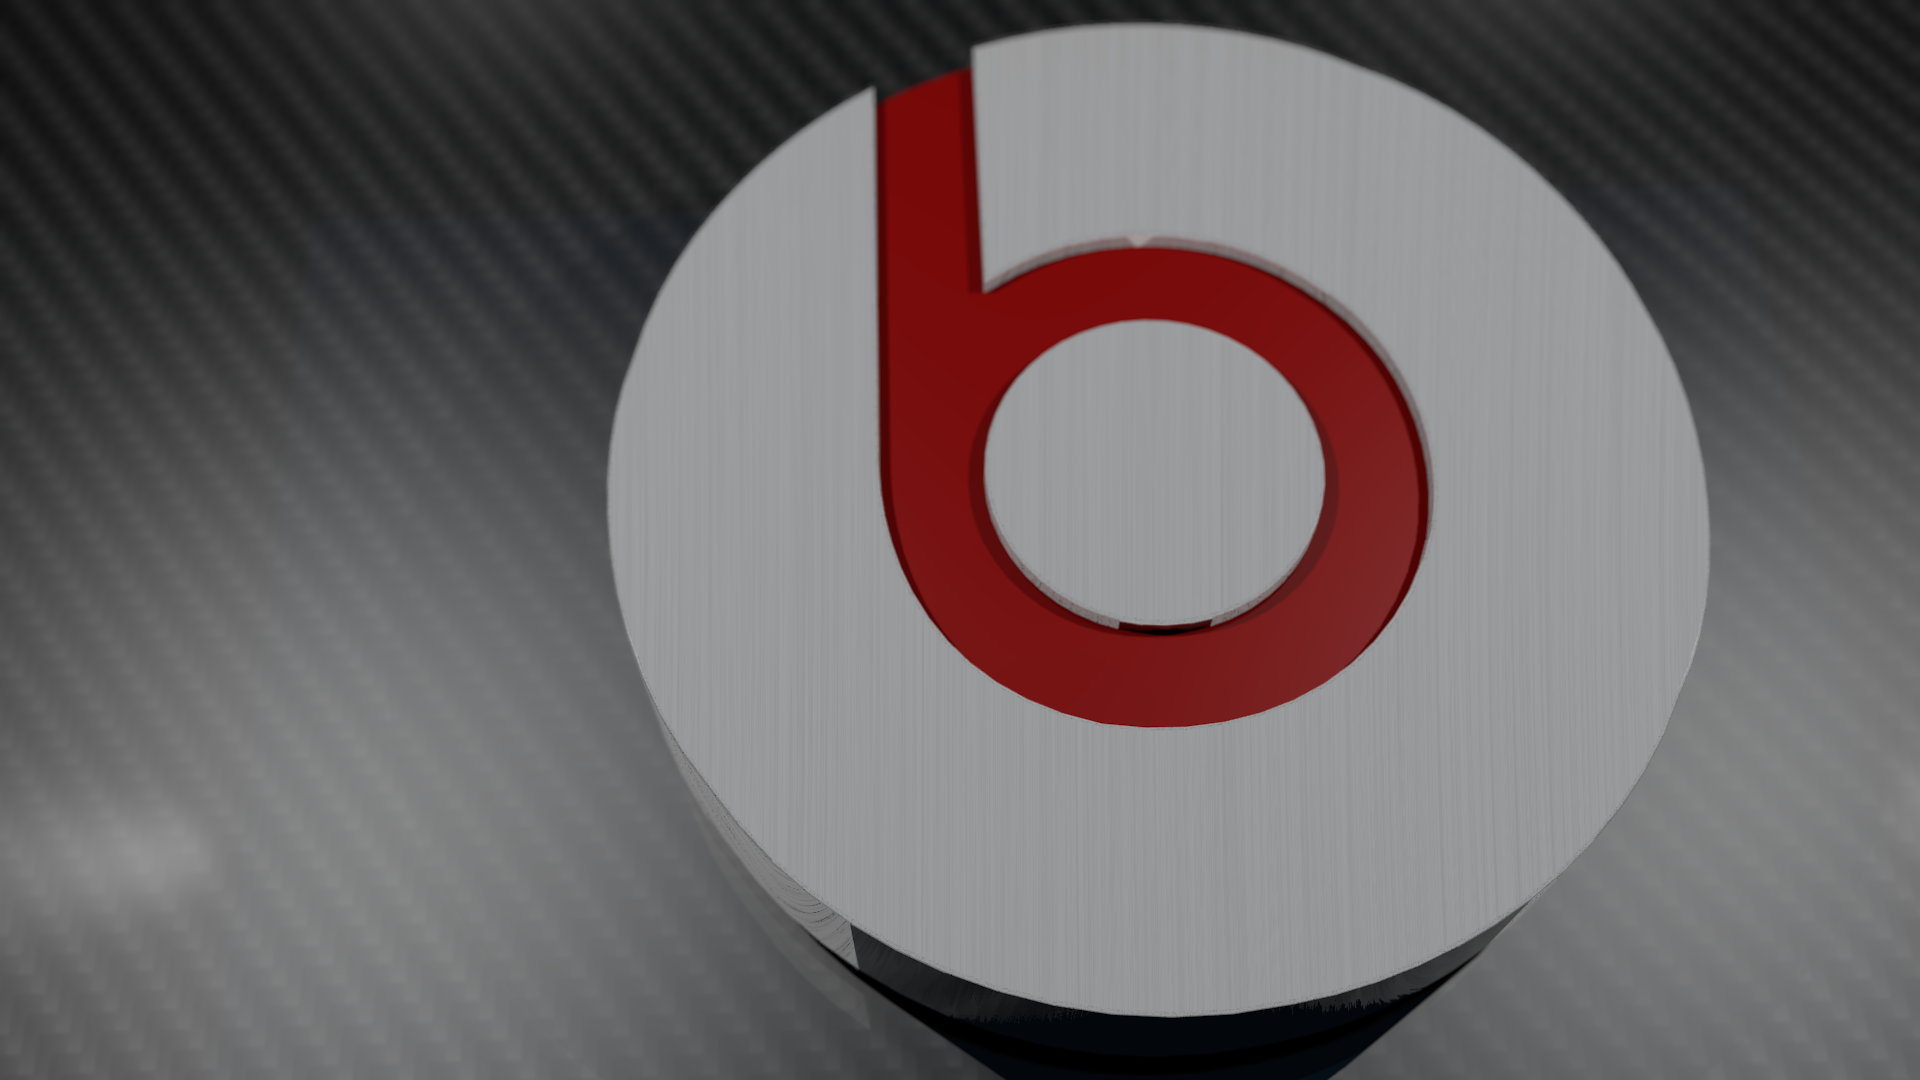 Beats by Dre Ultra HD Desktop Background Wallpaper for 4K UHD TV ... | 1080x1920